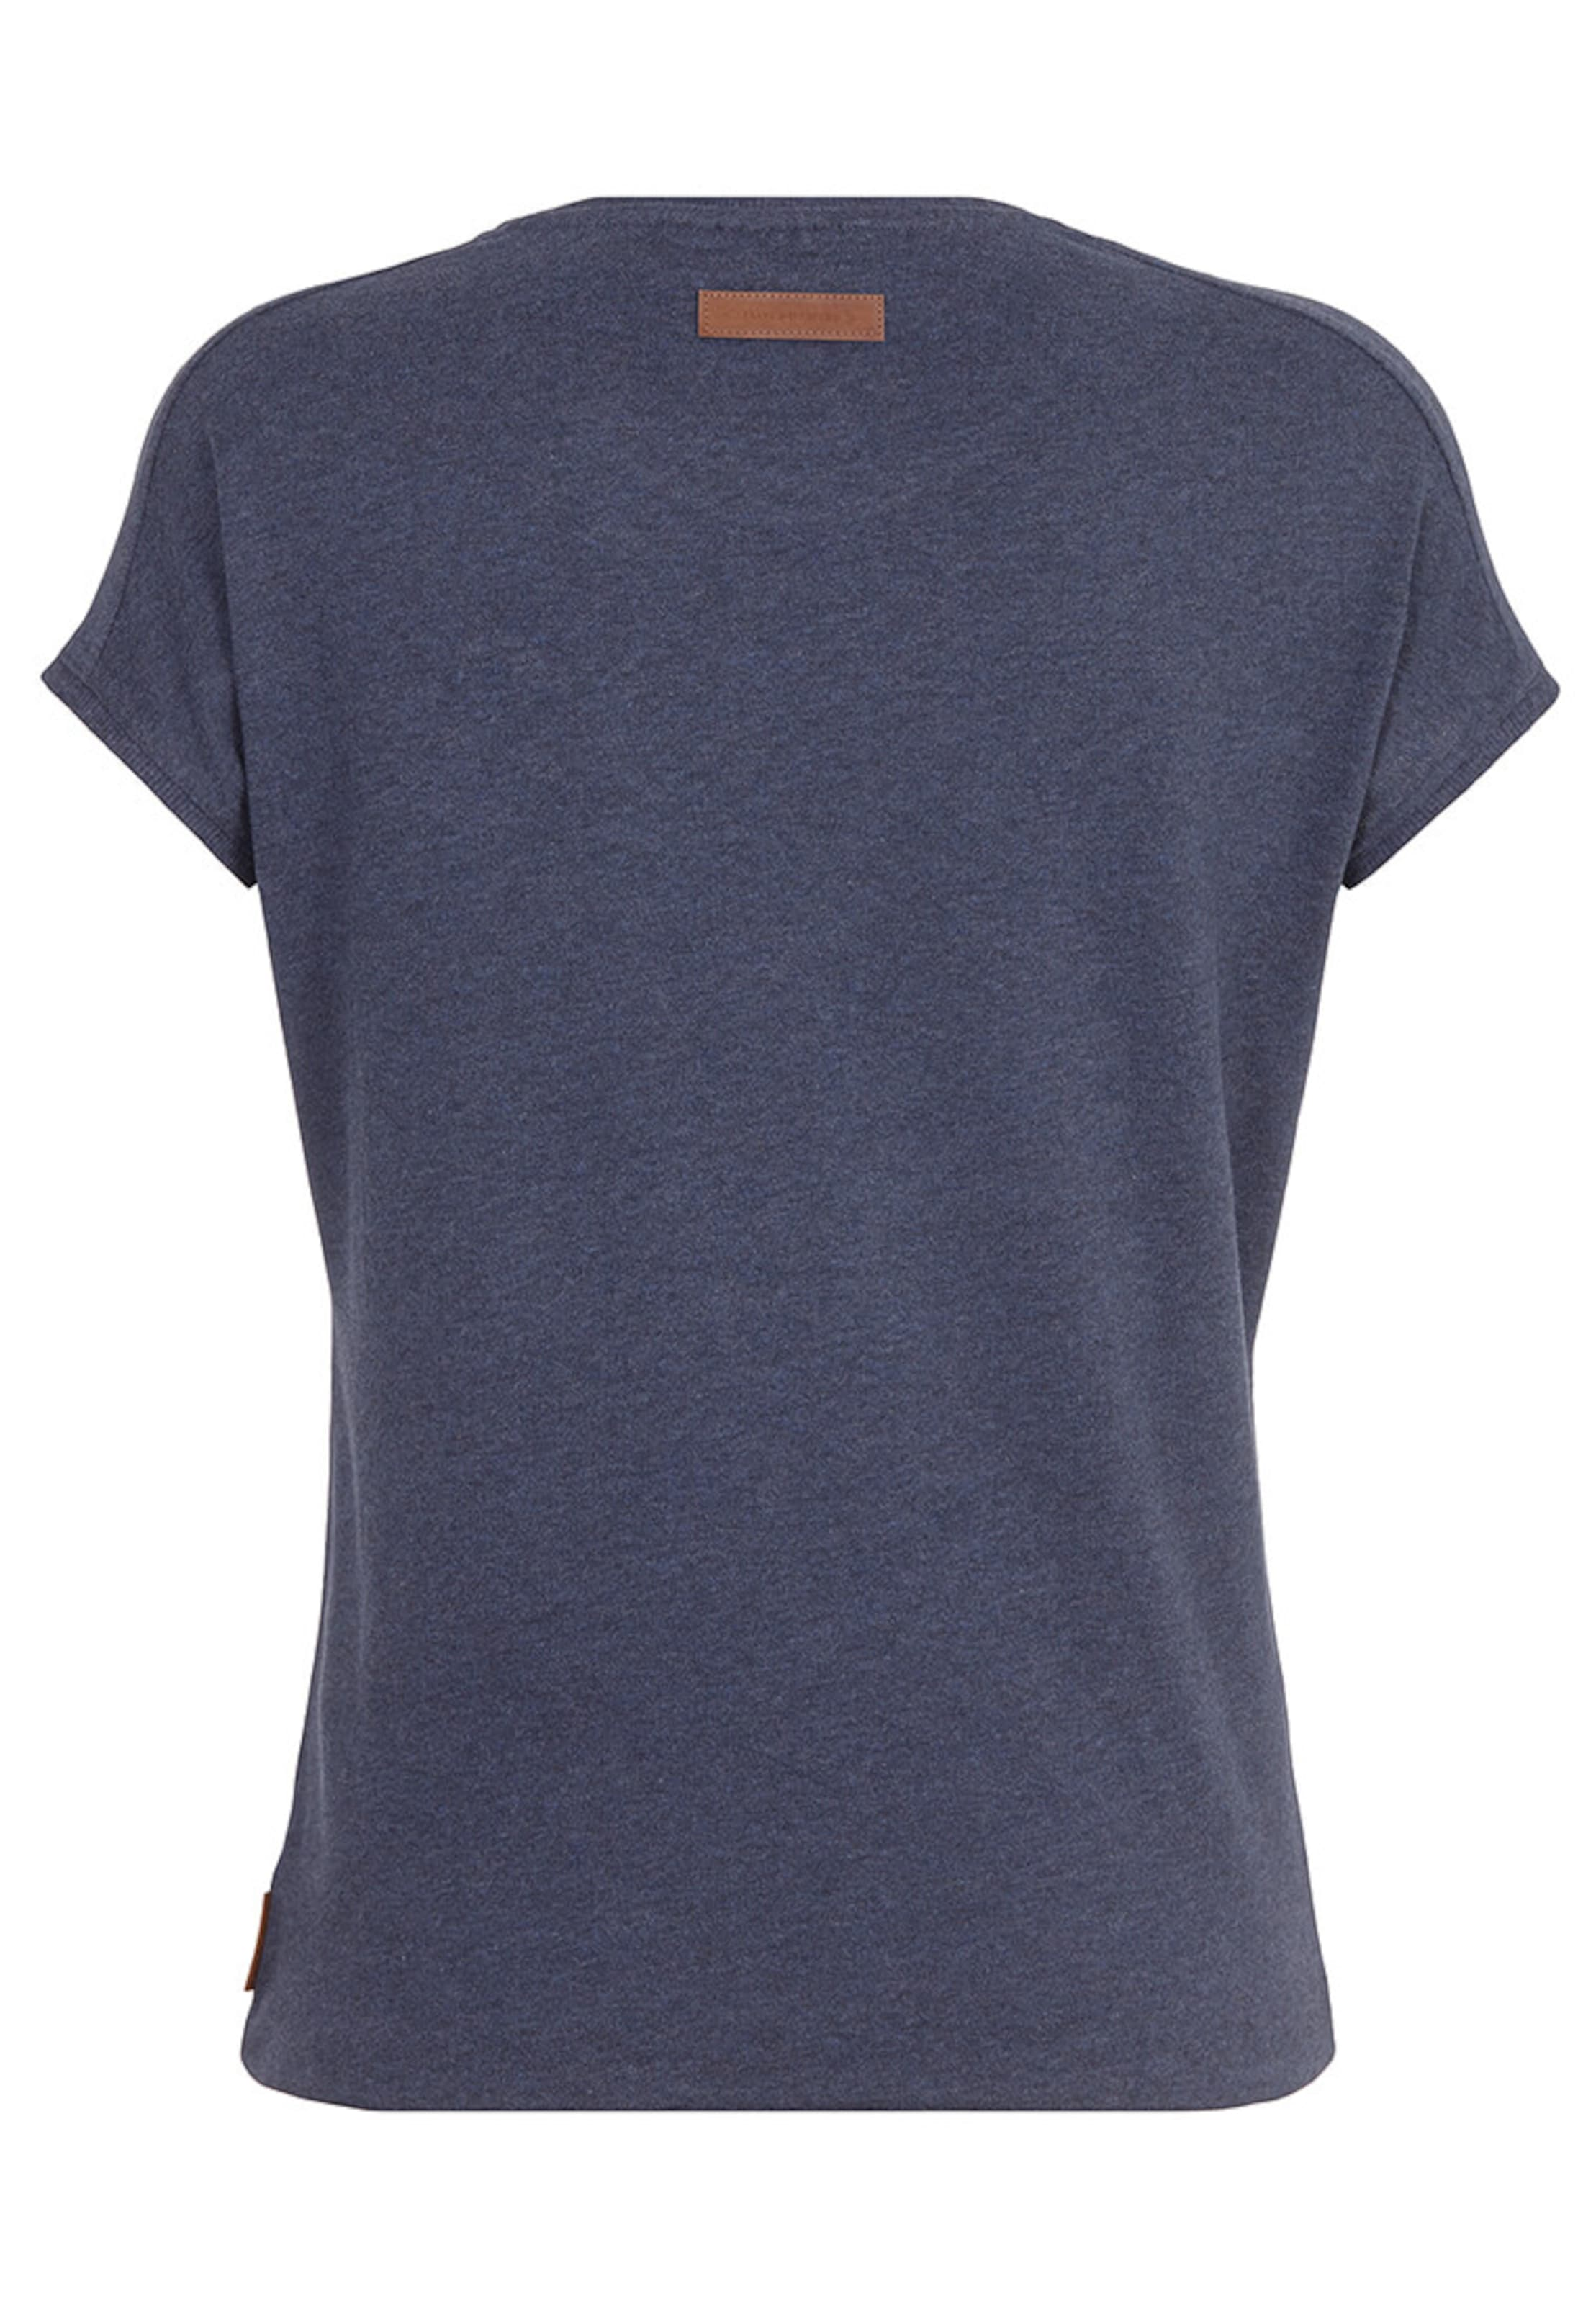 Naketano Naketano Navy In T In shirt T shirt In Navy Naketano shirt T 9WEHeD2IY